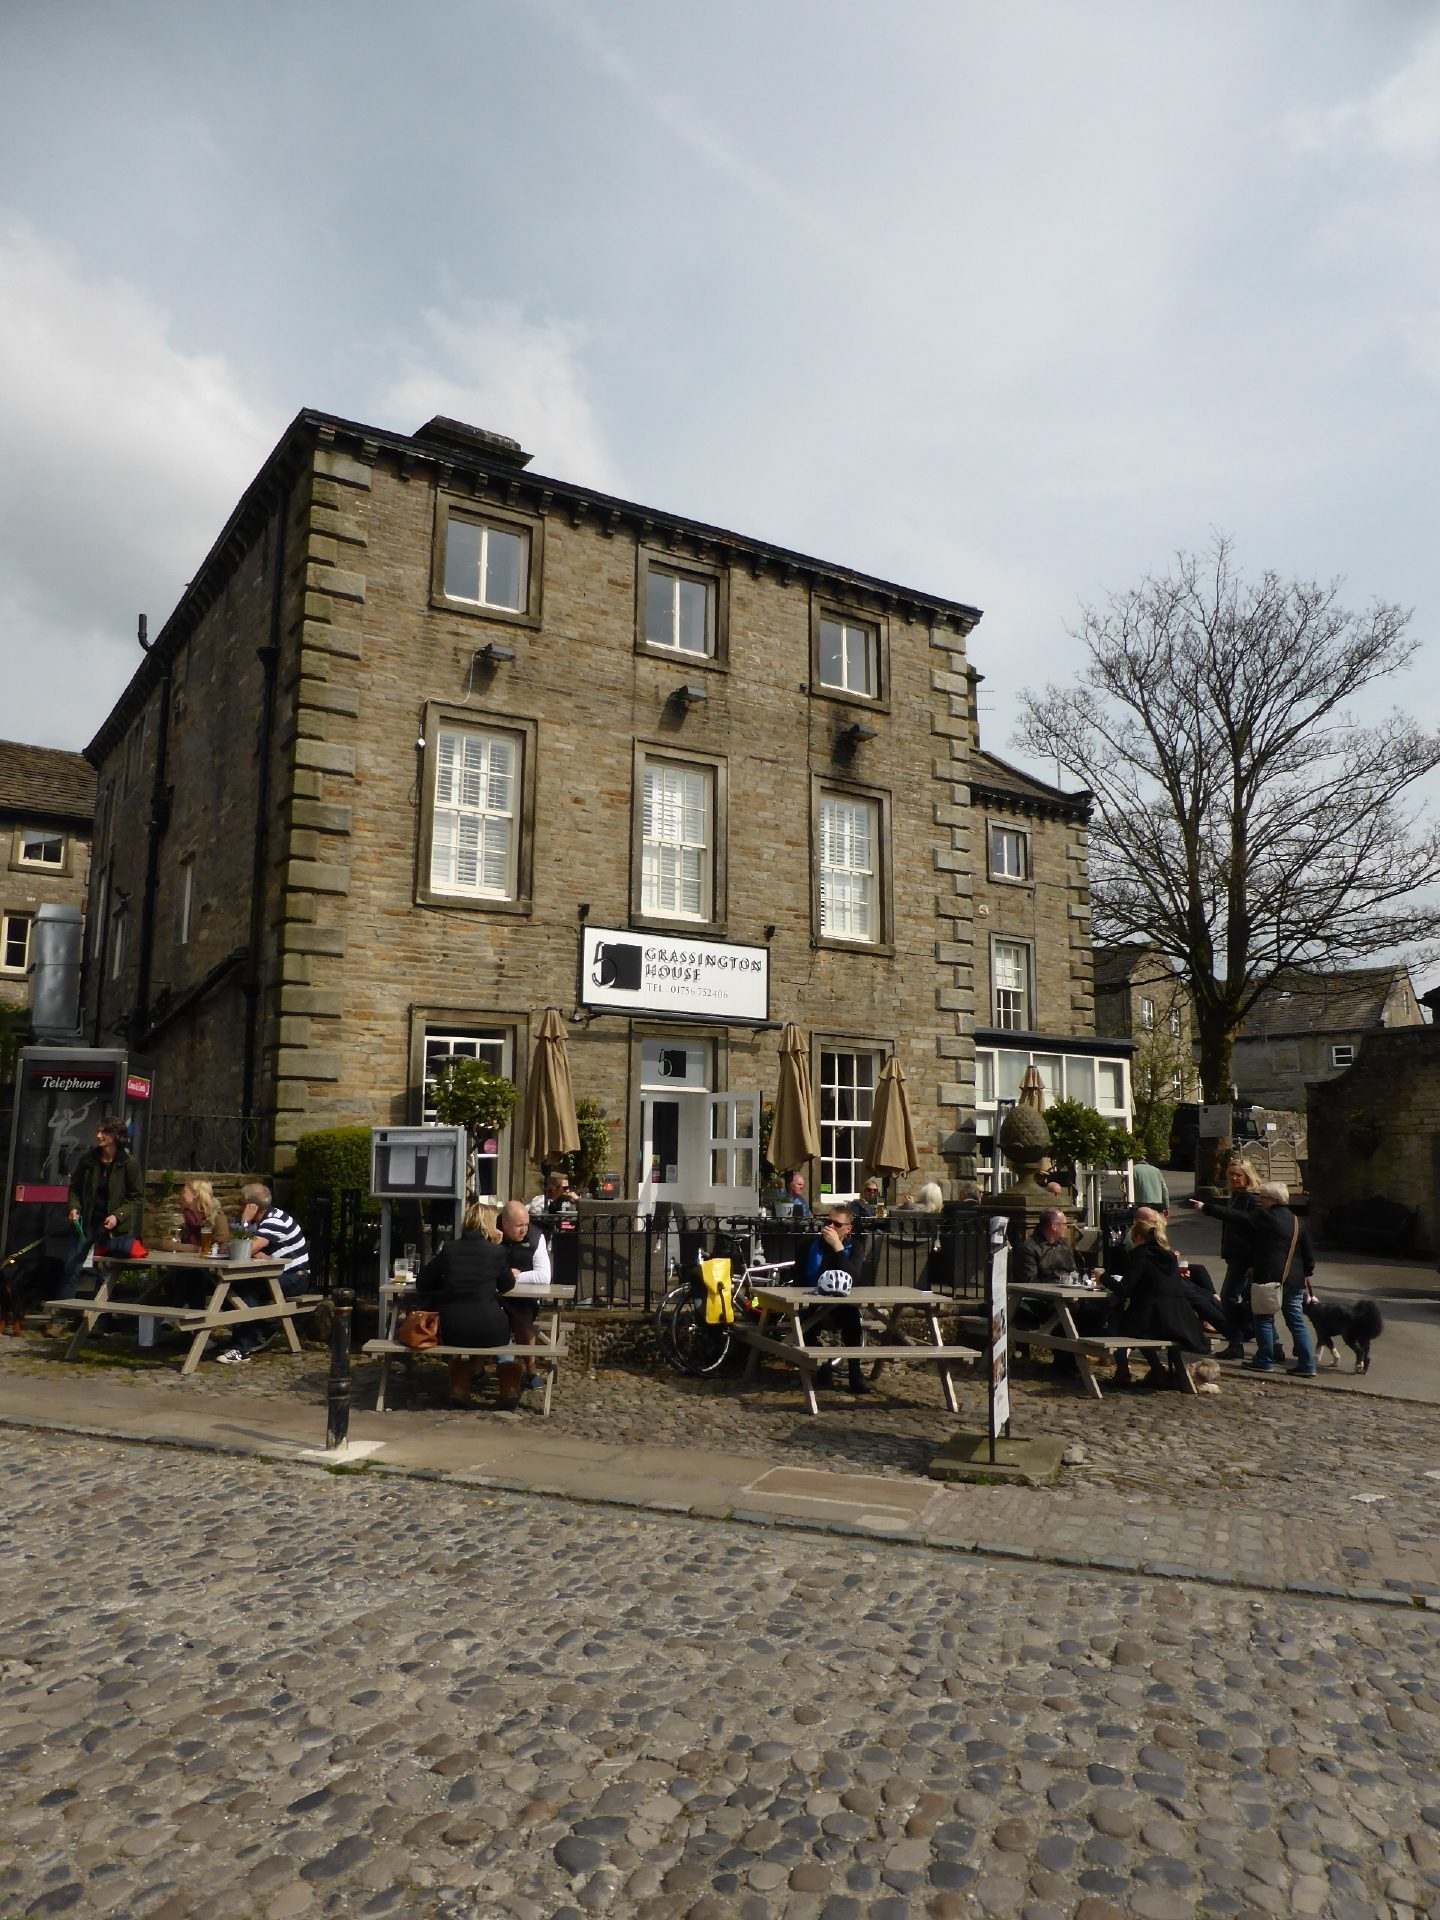 Dog Friendly Pubs Inns Yorkshire Dales